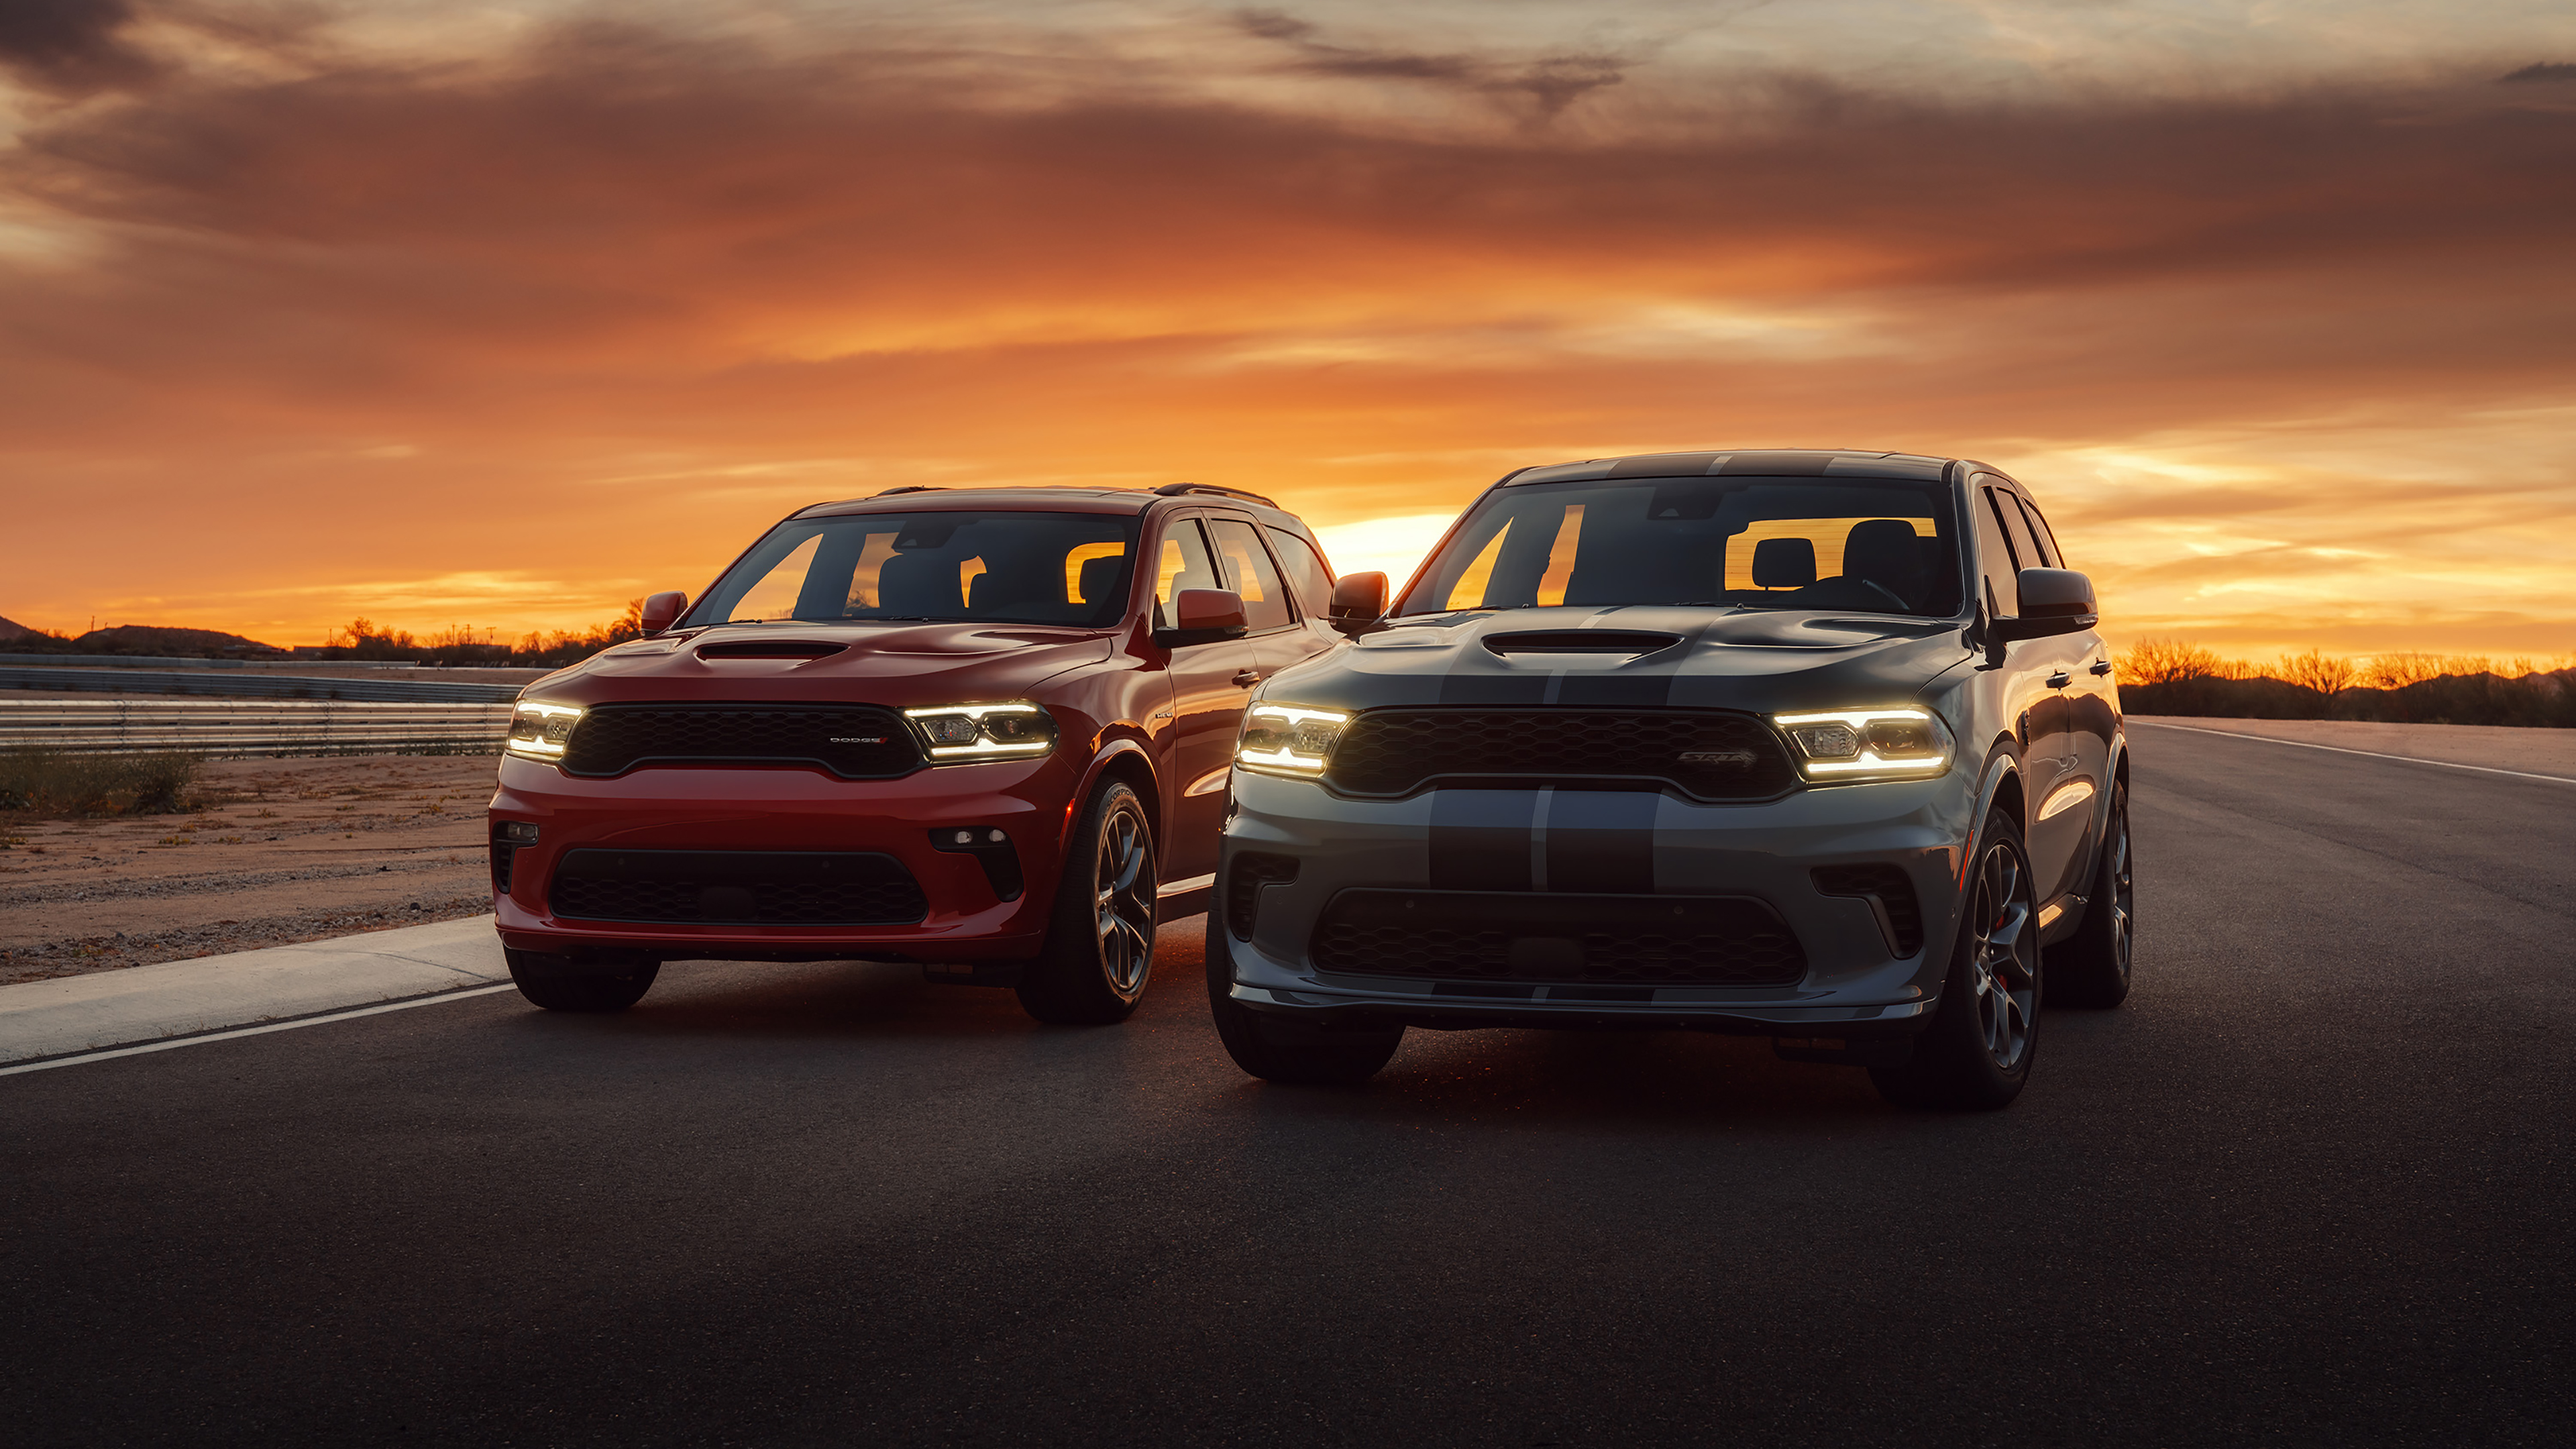 2021 Dodge Durango 4k Wallpaper Hd Car Wallpapers Id 15184